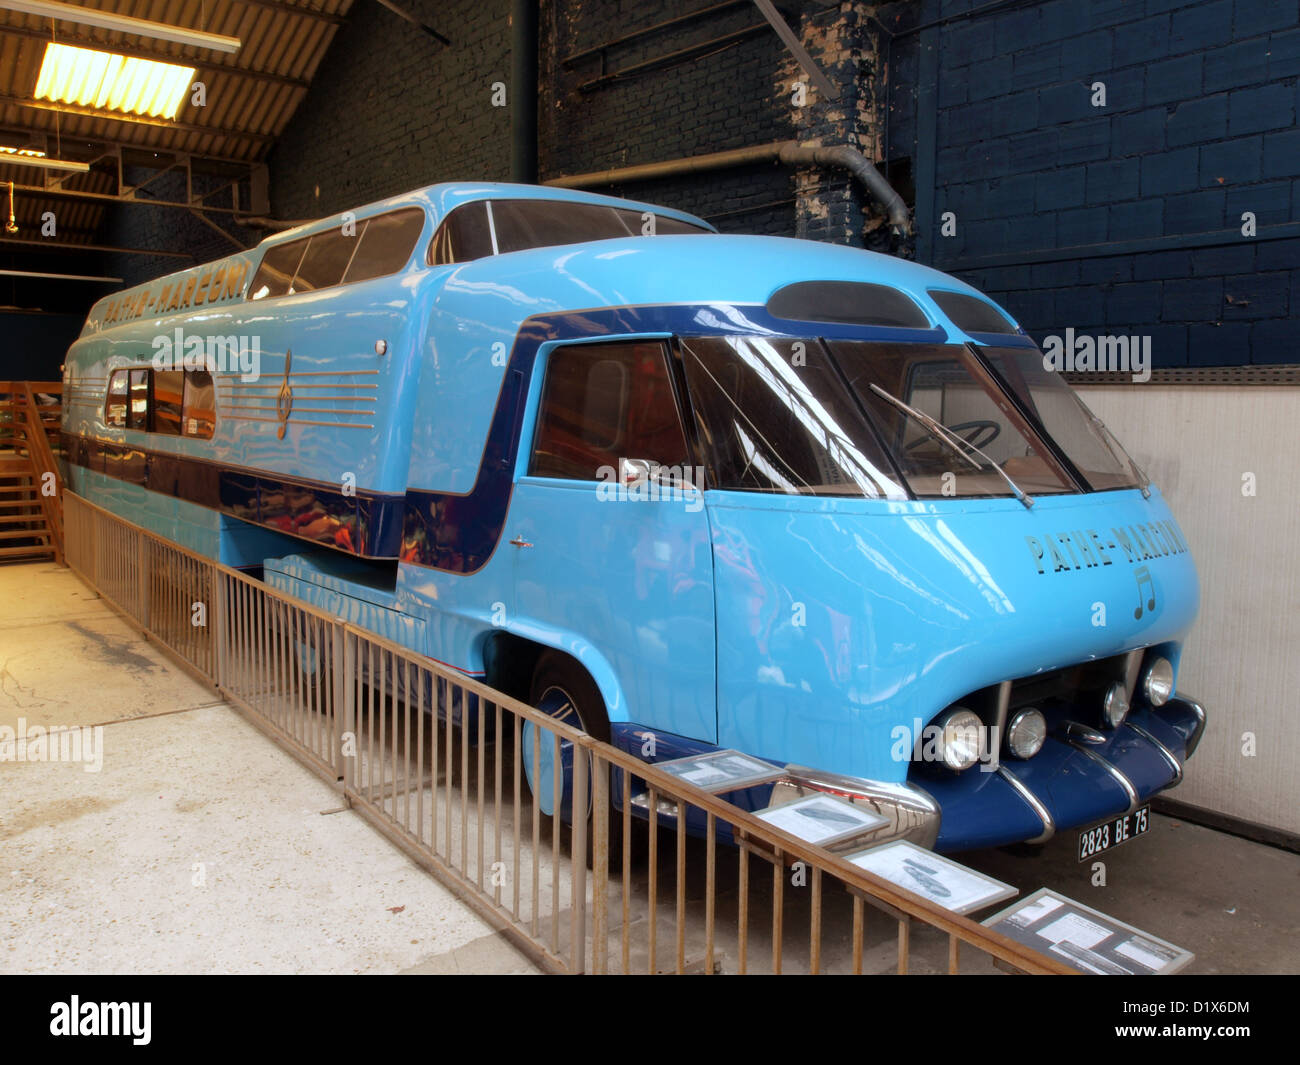 Automobile Museum Reims Champagne Pathé-Marconi bus - Stock Image